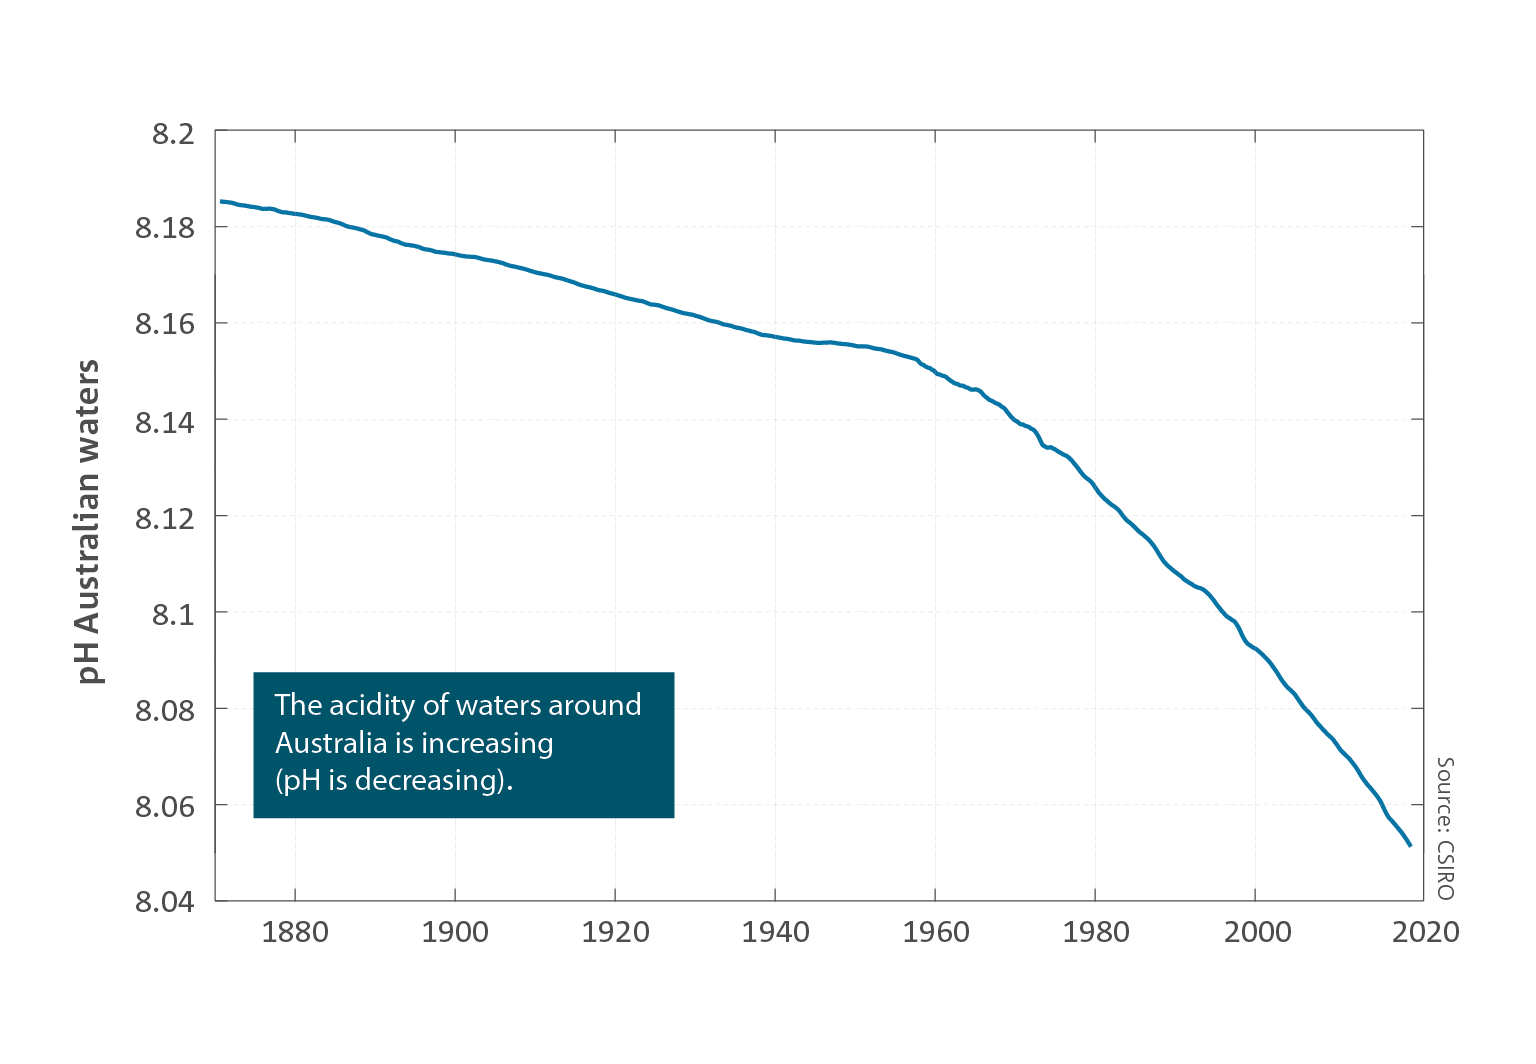 The acidity of waters around Australia is increasing (pH is decreasing)  Line graph of the average pH of water surrounding Australia. It shows a decreasing line. For a full description of this figure please contact: CSIROEnquiries@csiro.au